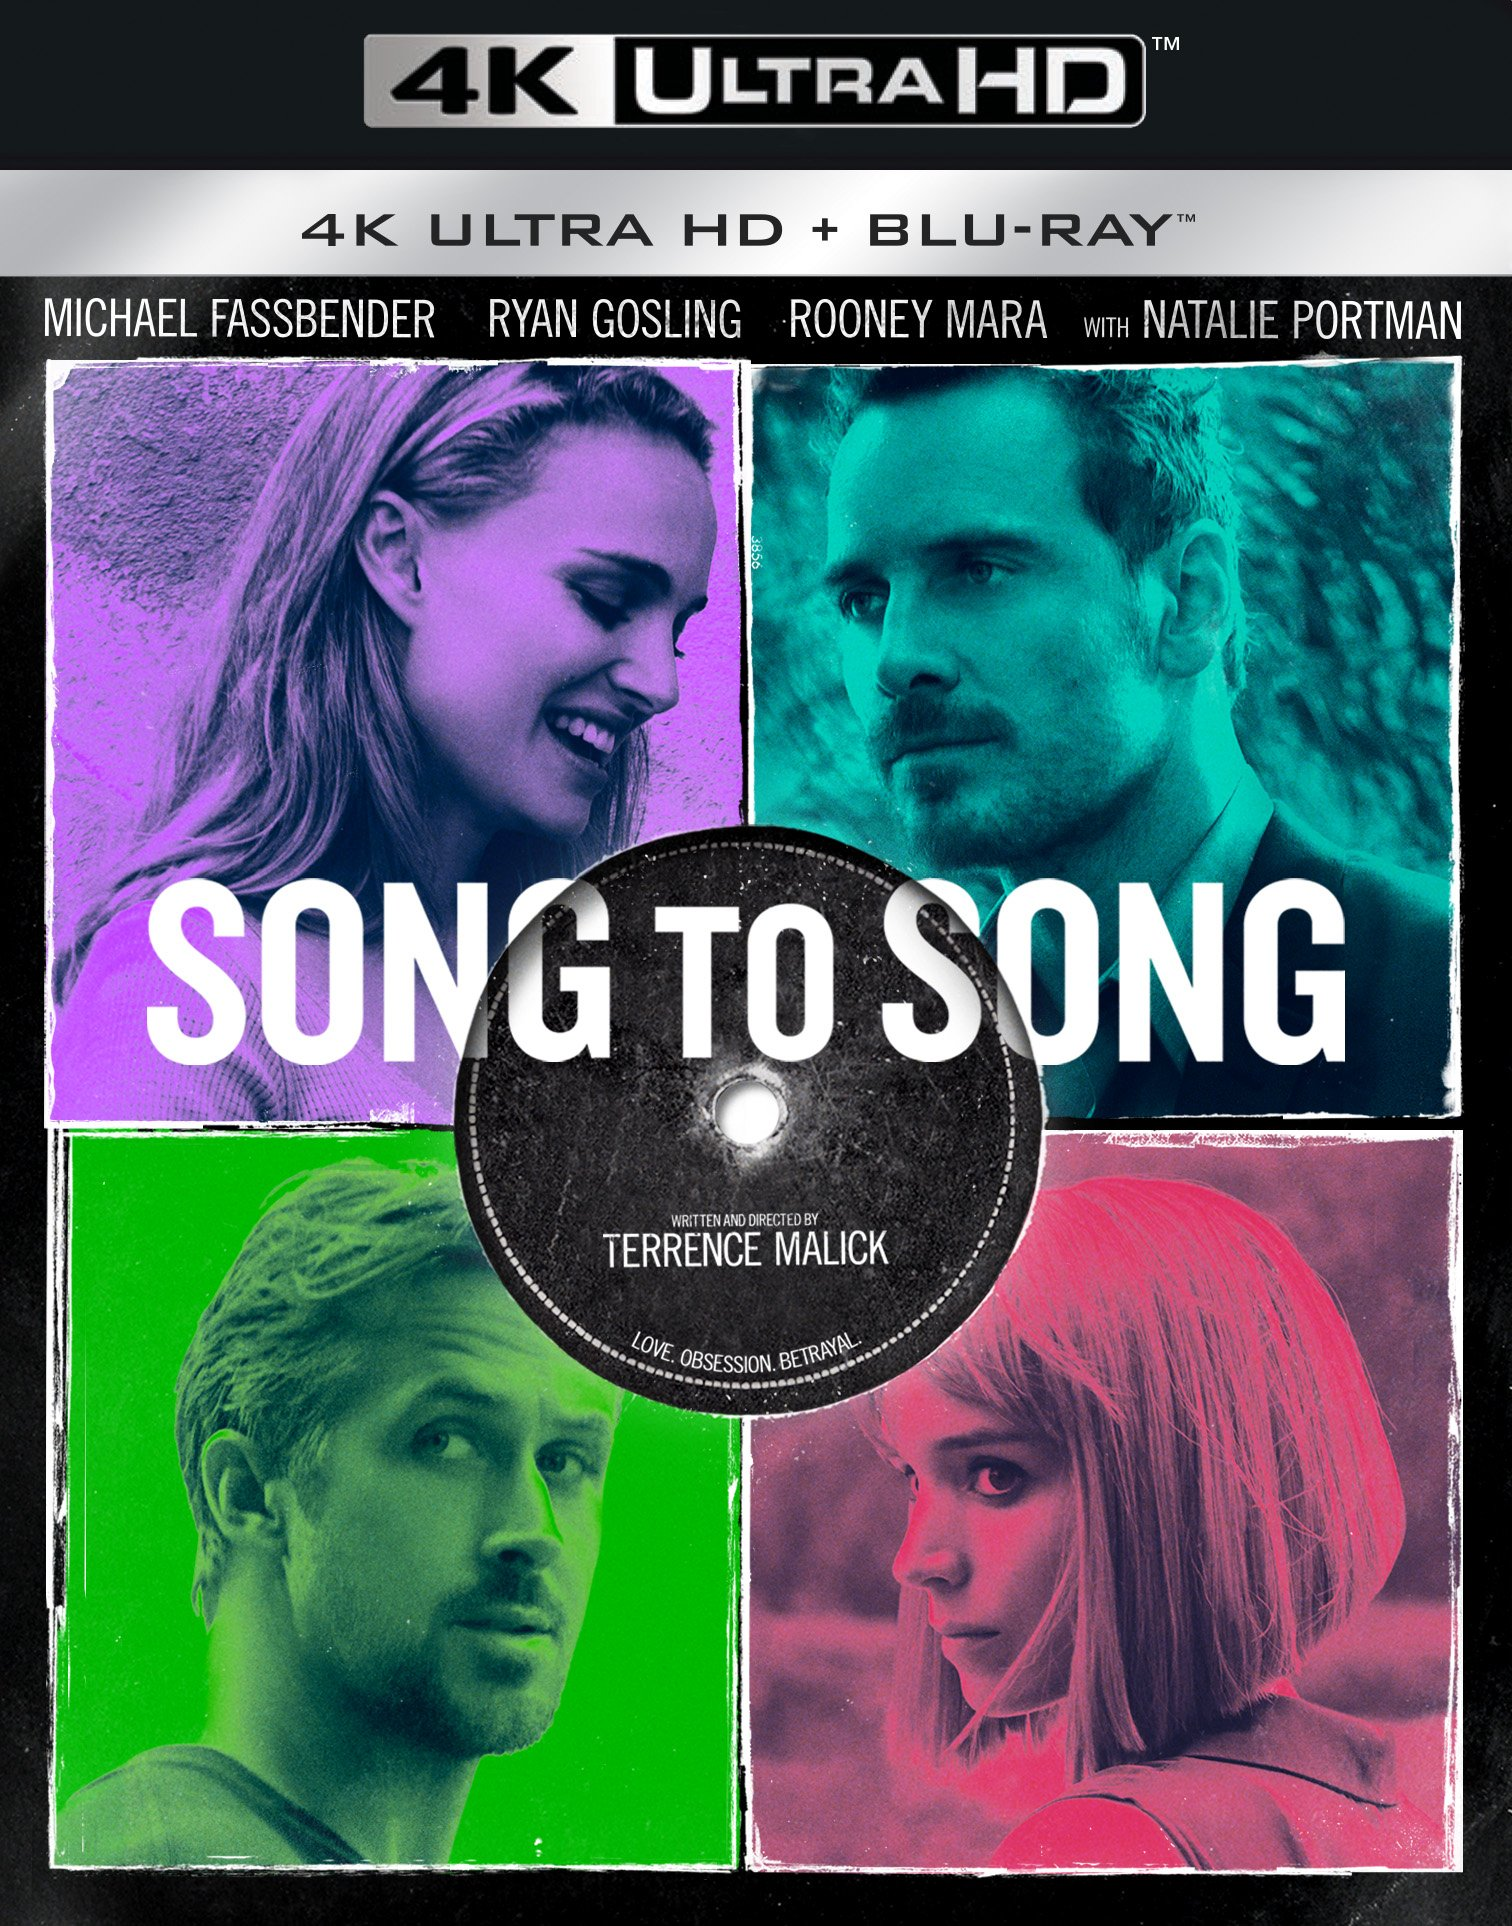 4K Blu-ray : Song to Song (With Blu-Ray, 4K Mastering, 2 Pack, Widescreen, 2 Disc)